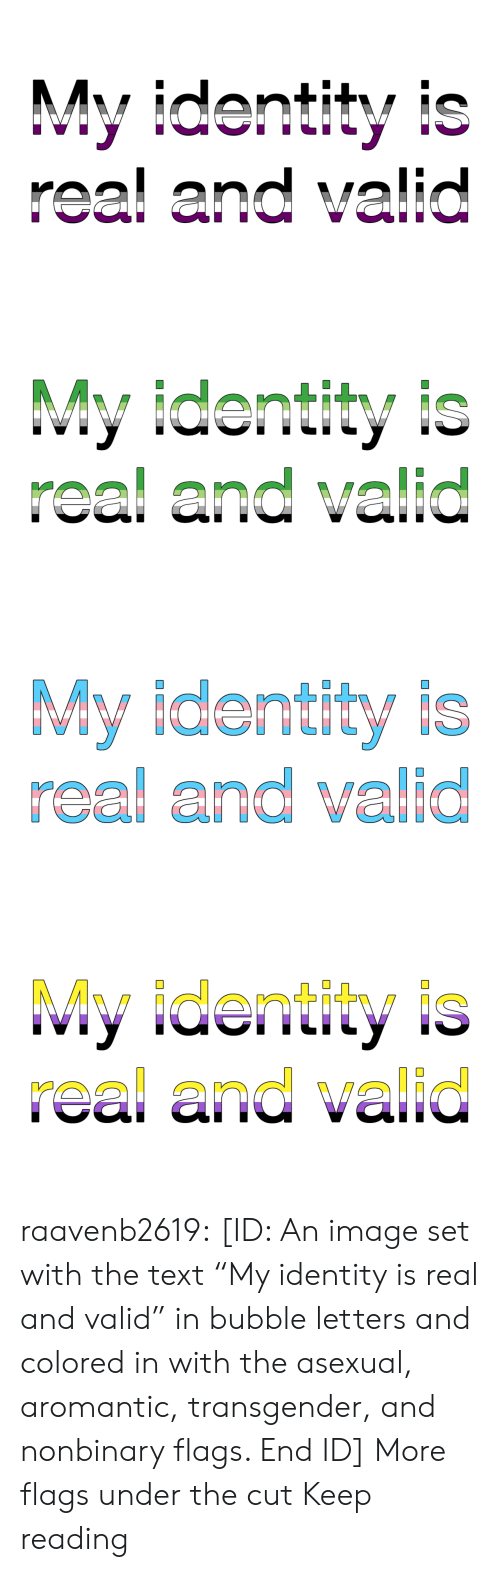 """Asexual: My identity is  real and valid   My identity is  real and valid   My identity is  real and valid   My identity is  real and valid raavenb2619:  [ID: An image set with the text """"My identity is real and valid"""" in bubble letters and colored in with the asexual, aromantic, transgender, and nonbinary flags. End ID]  More flags under the cut  Keep reading"""